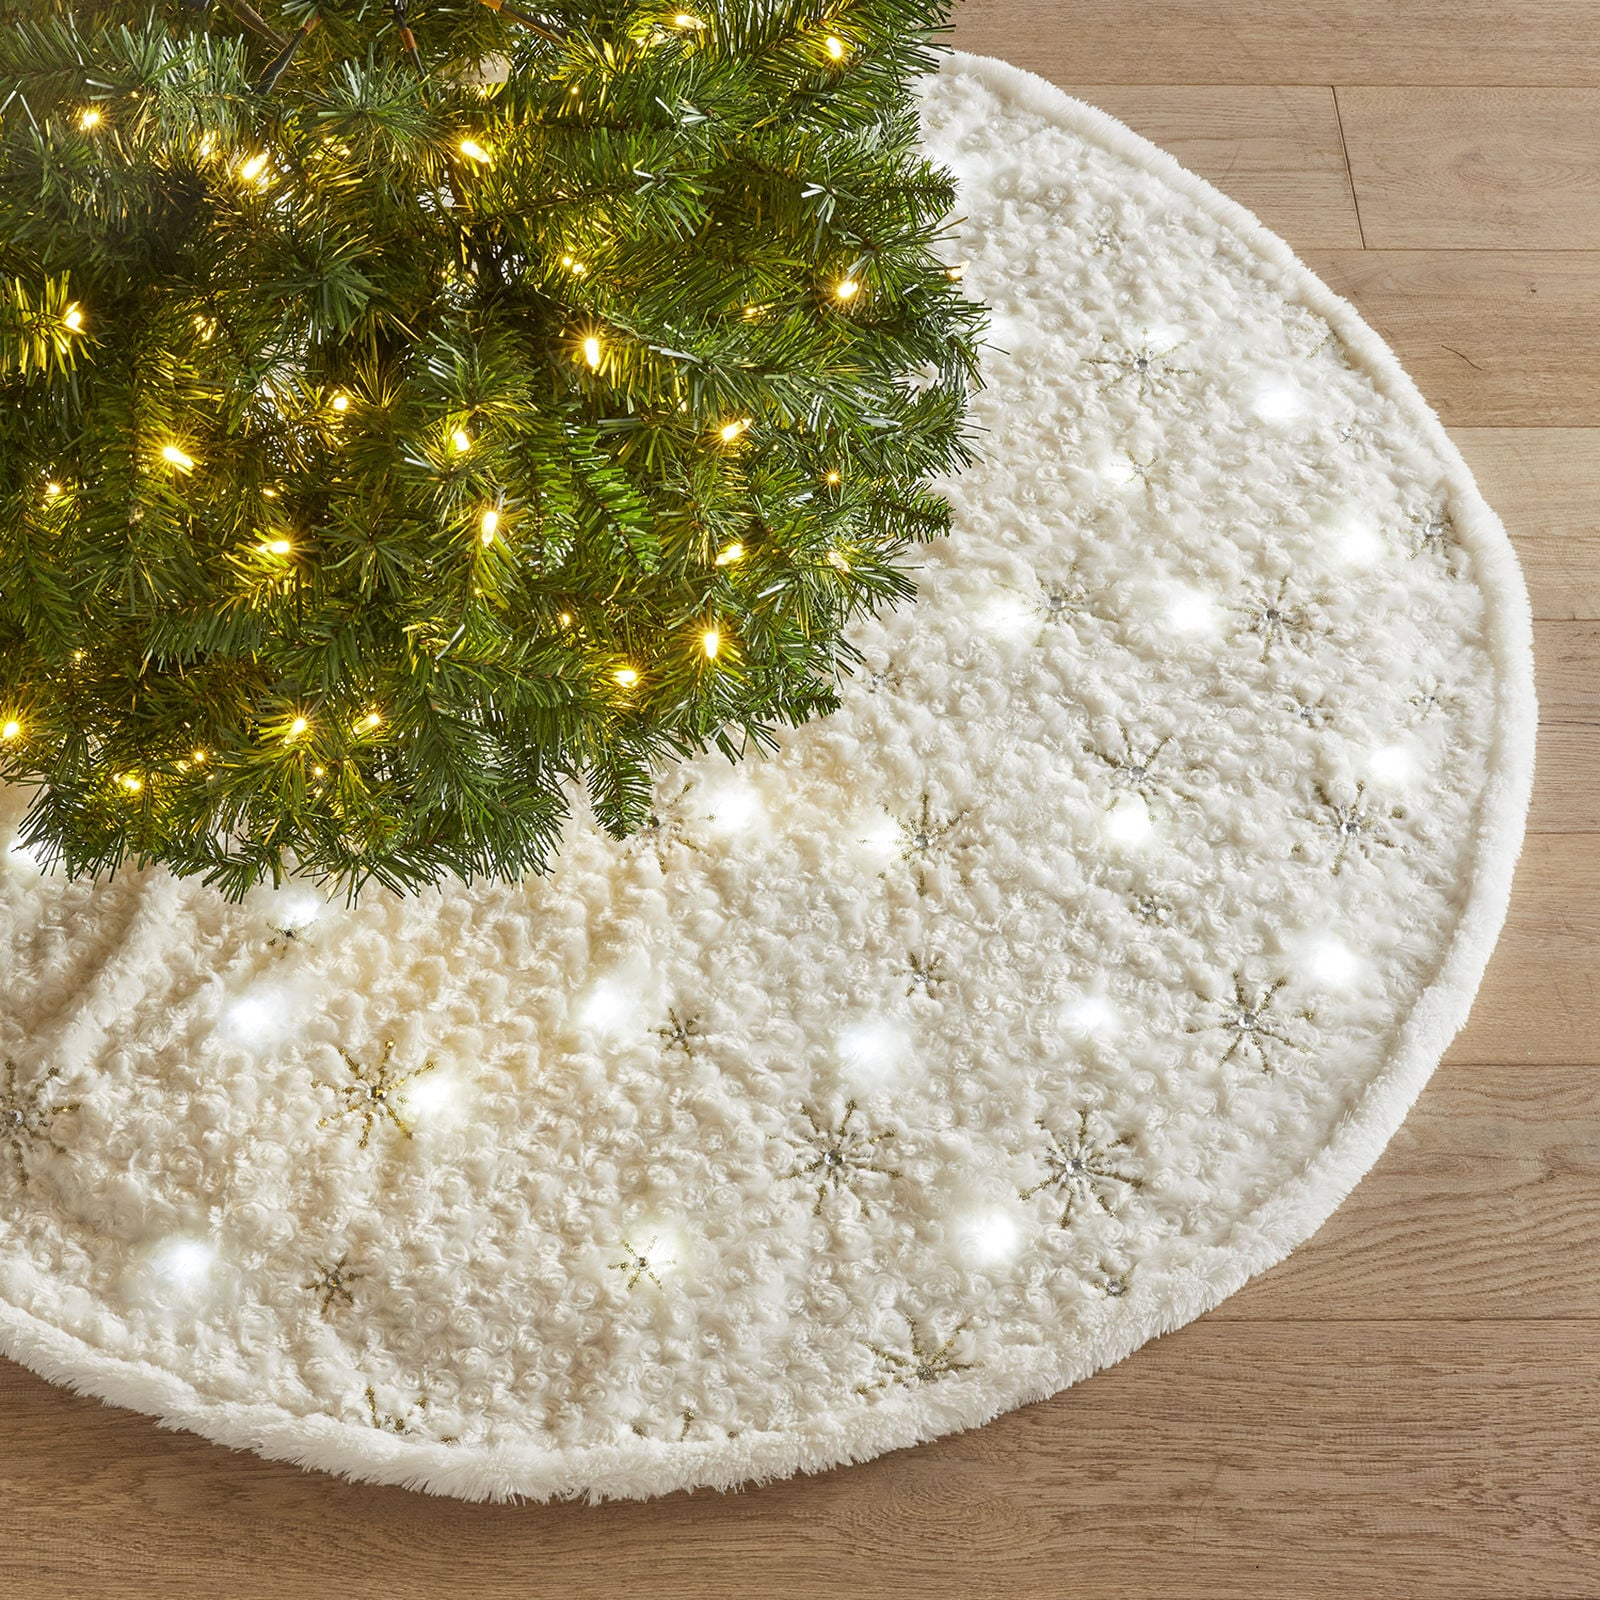 Light Up Fuzzy Snowflake Tree Skirt 27 Unique Christmas Tree Decorations Guaranteed To Spark Holiday Cheer Popsugar Family Photo 27